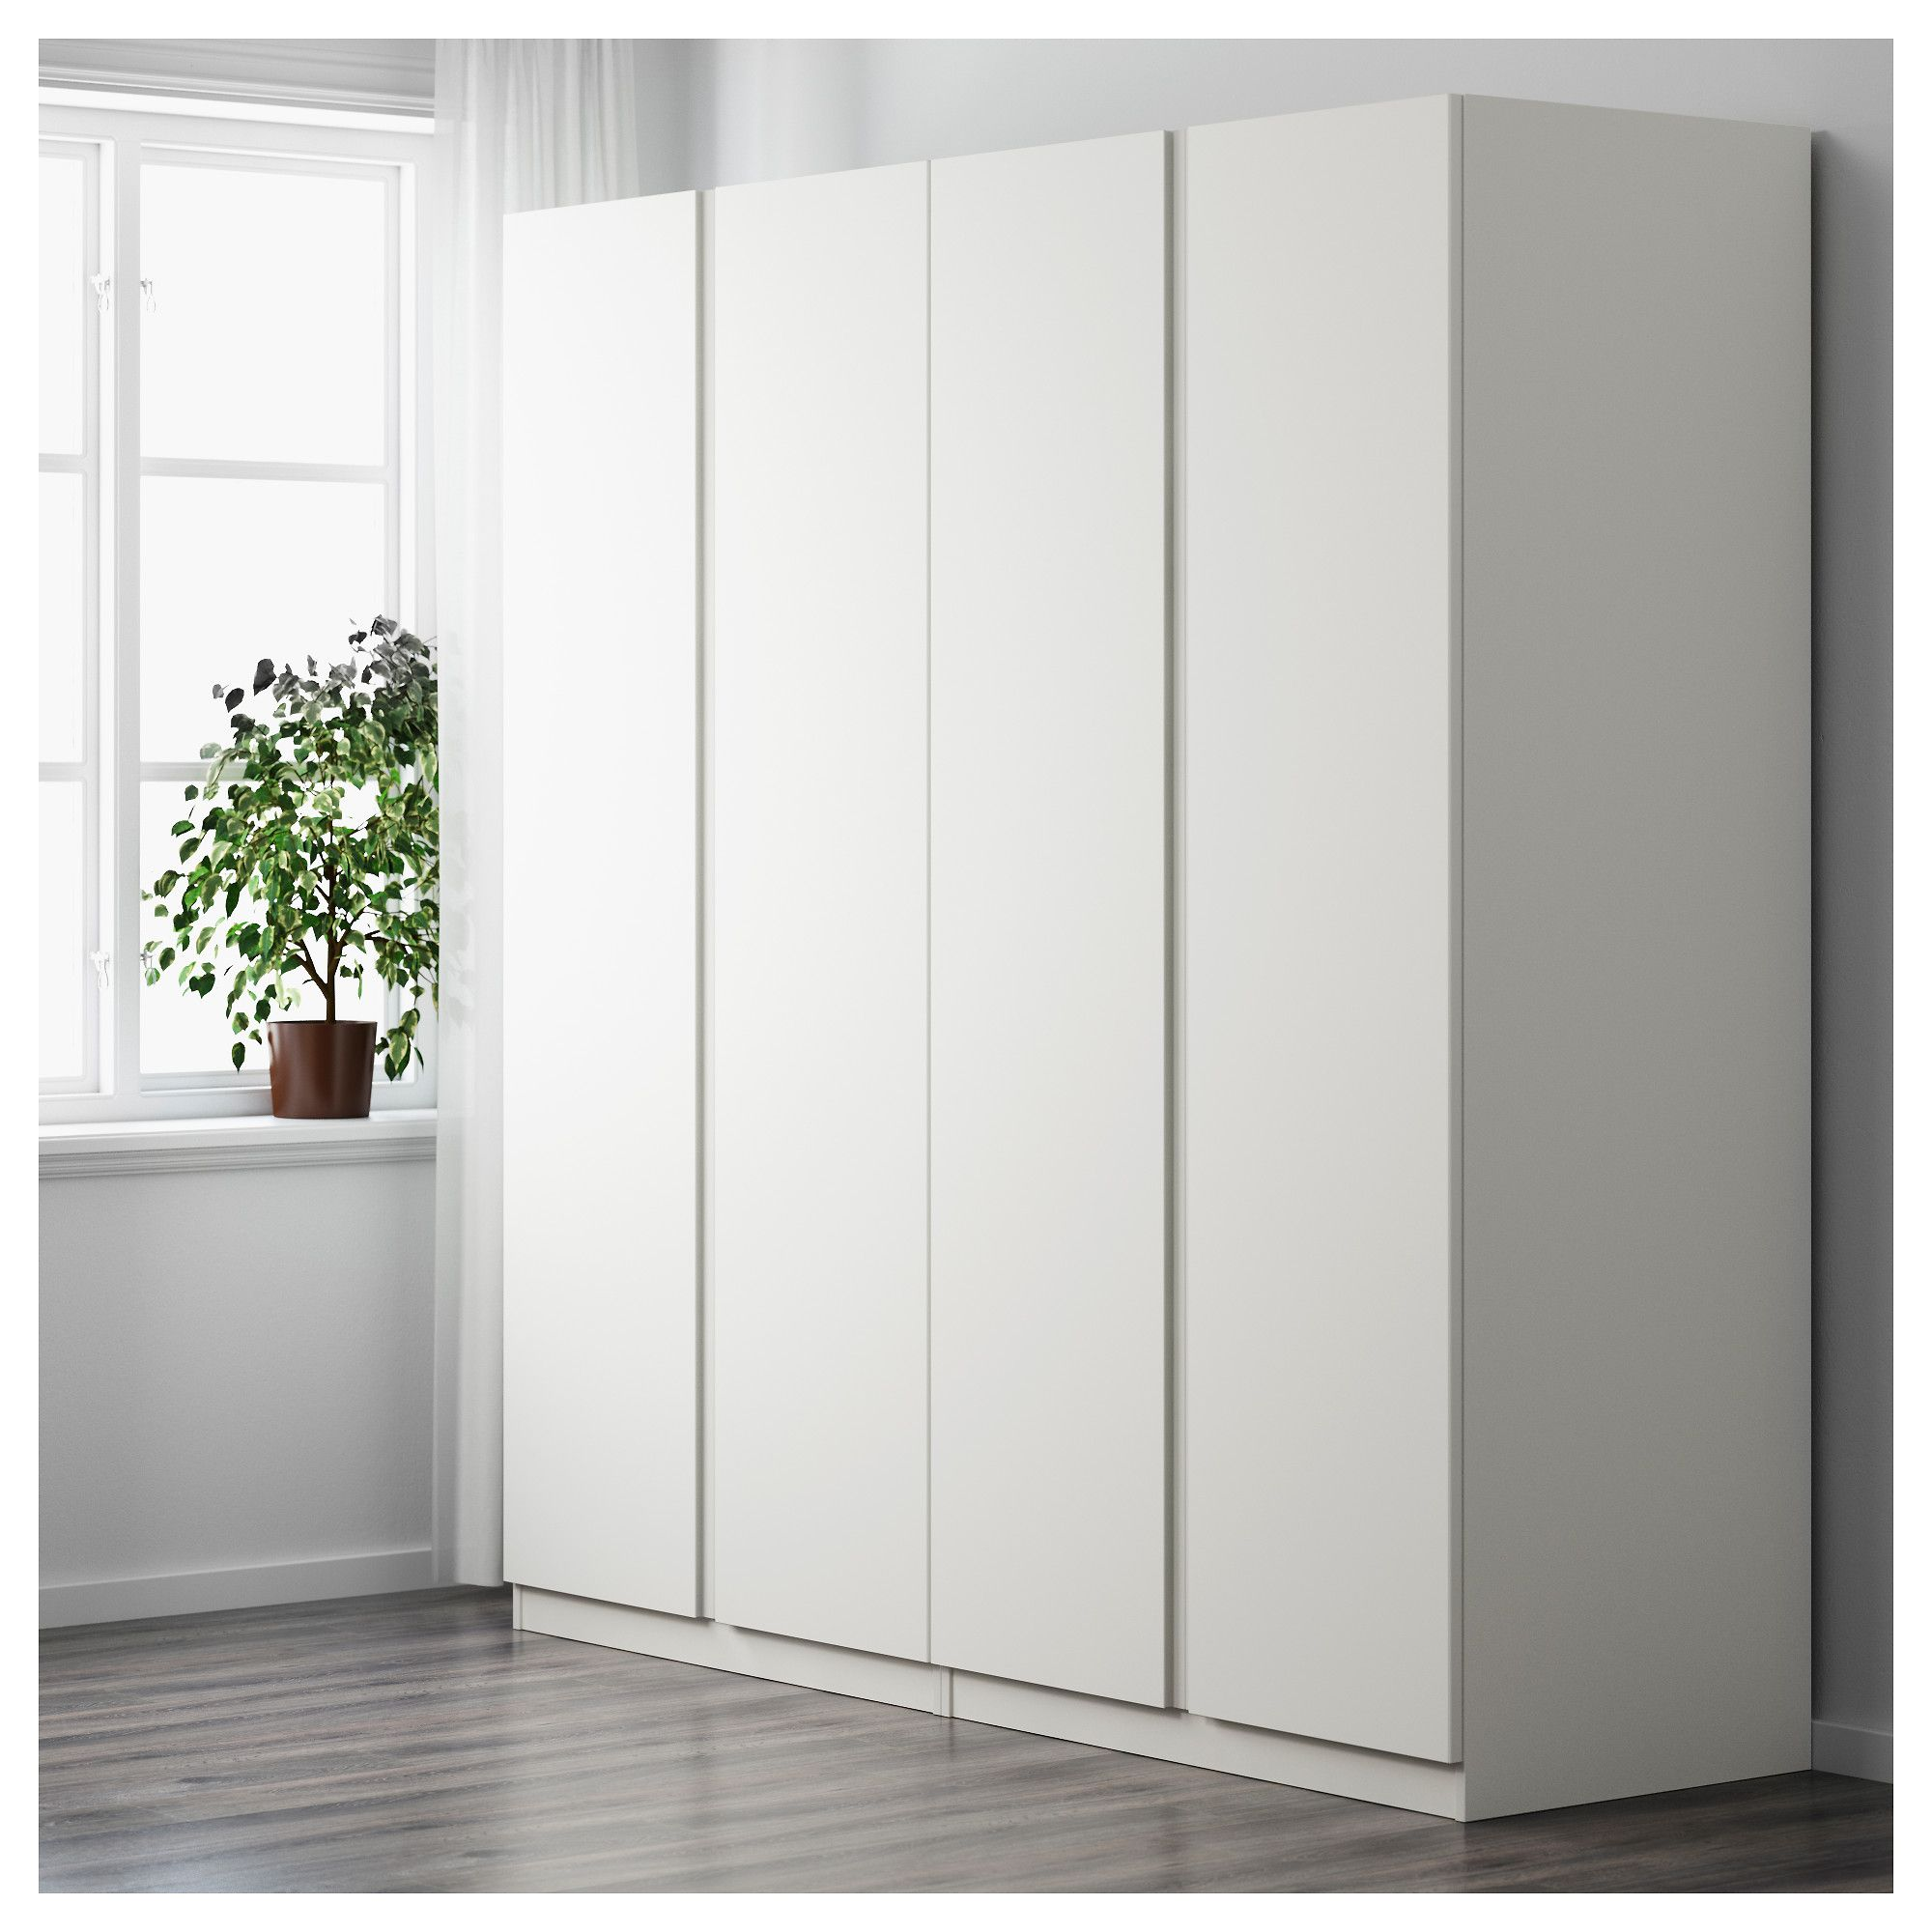 Image result for images of vikanes doors in a bedroom - Armarios pax ikea planificador ...